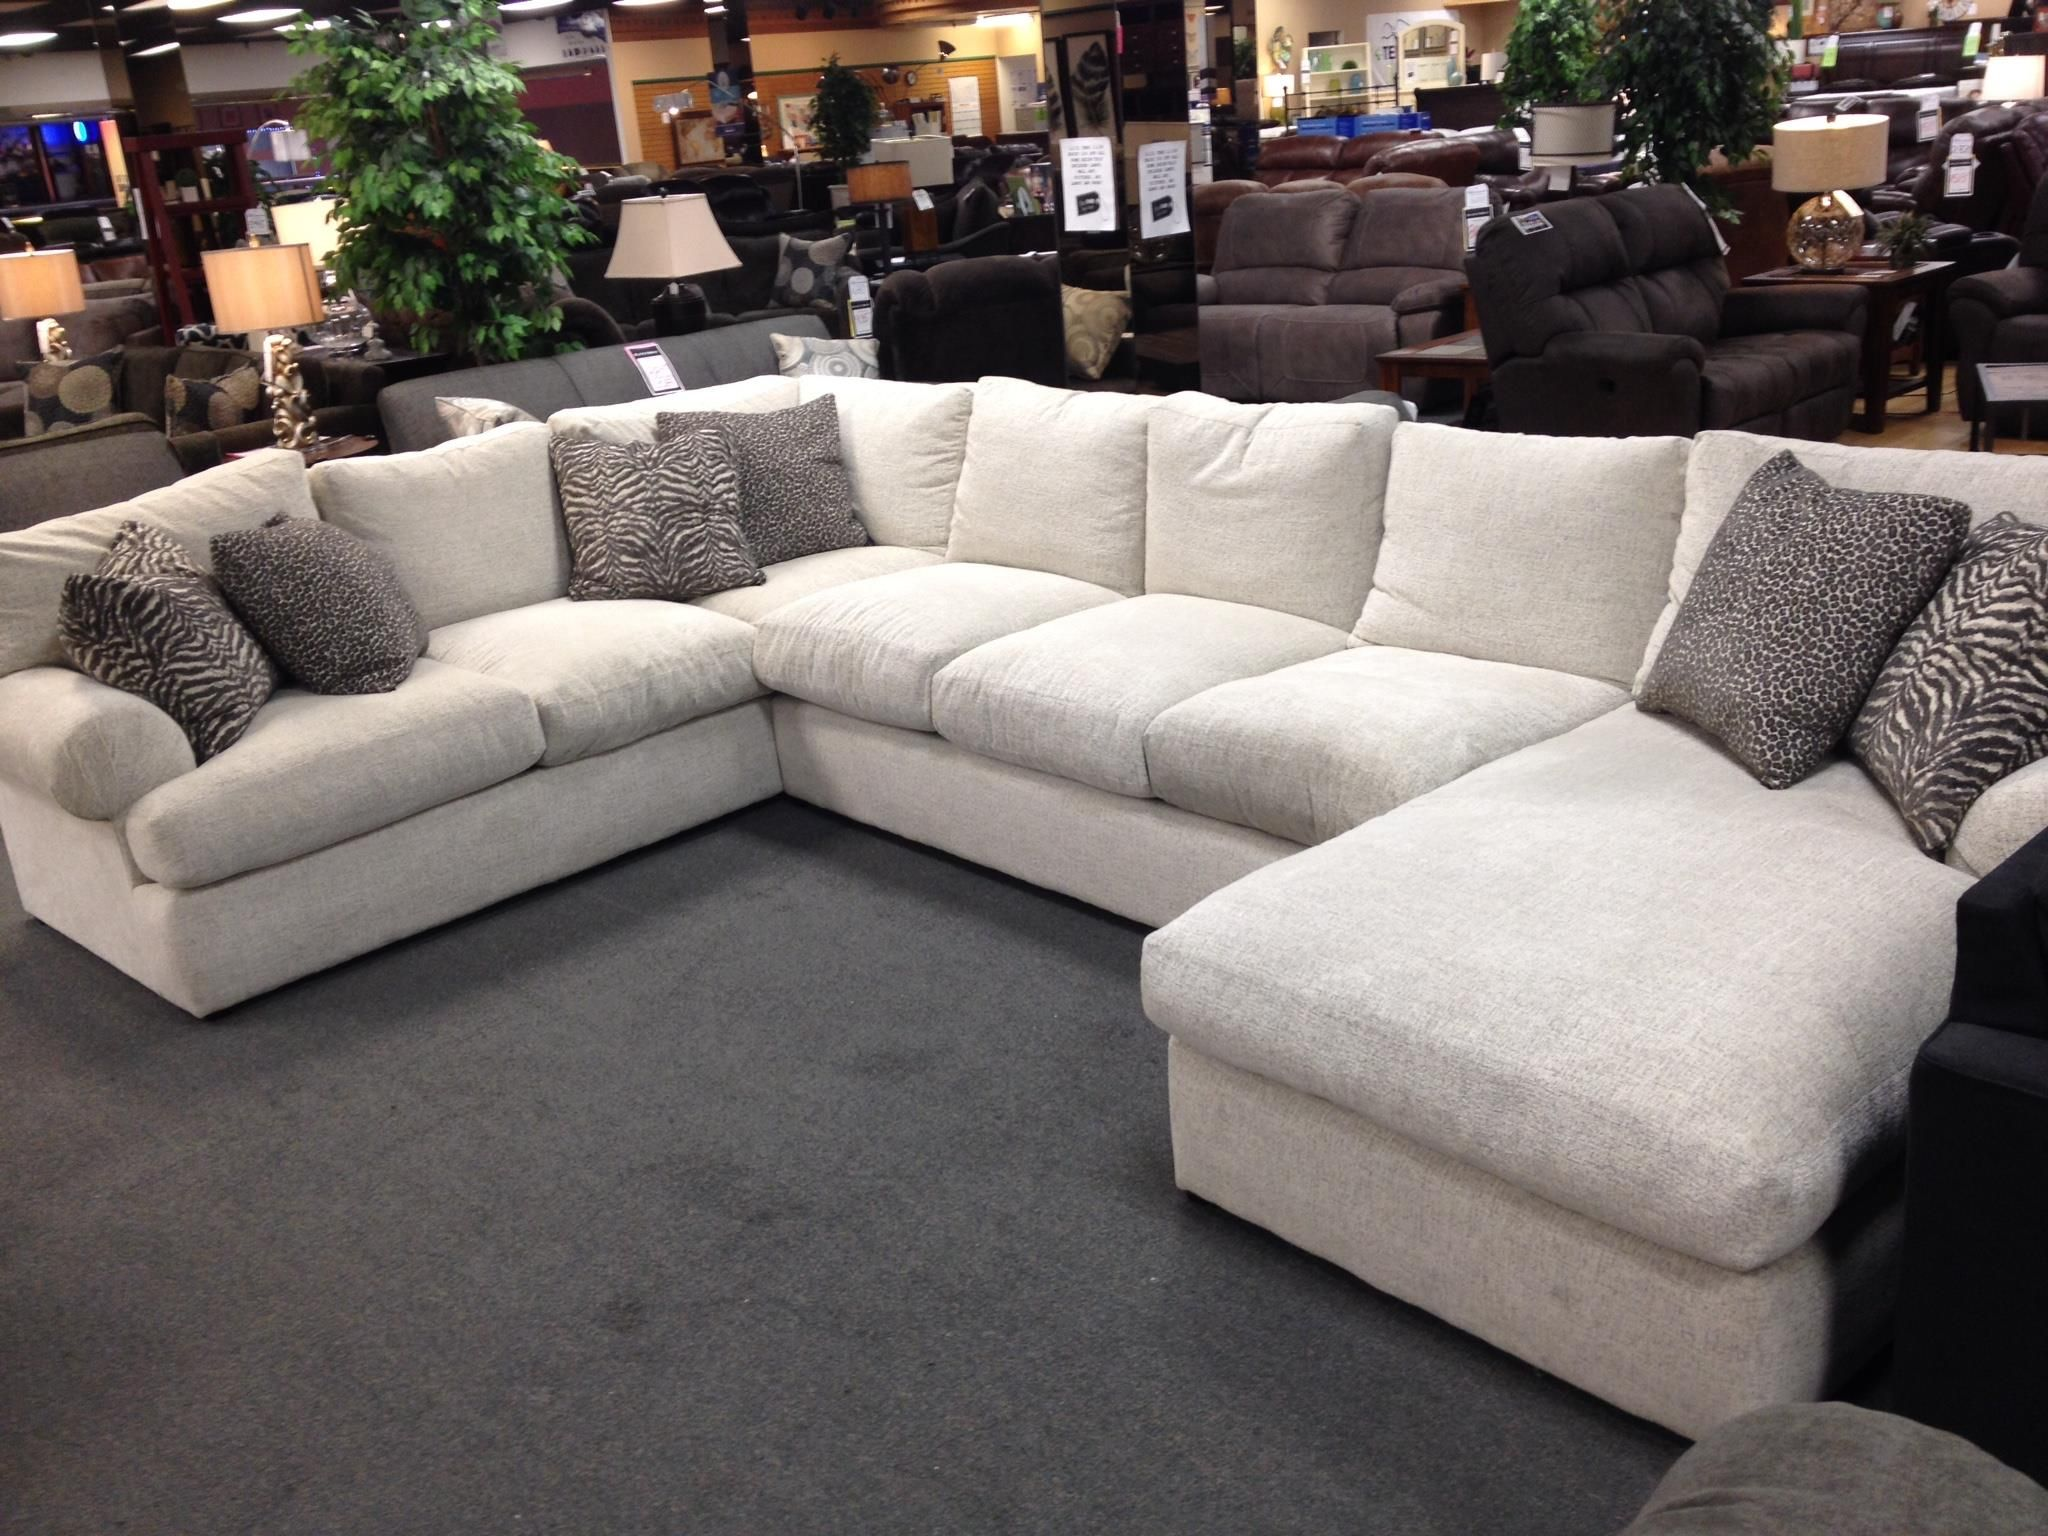 Fantastic 329 3 Pc Sectional By Stanton Living Dining Room Cozy Home Interior And Landscaping Dextoversignezvosmurscom